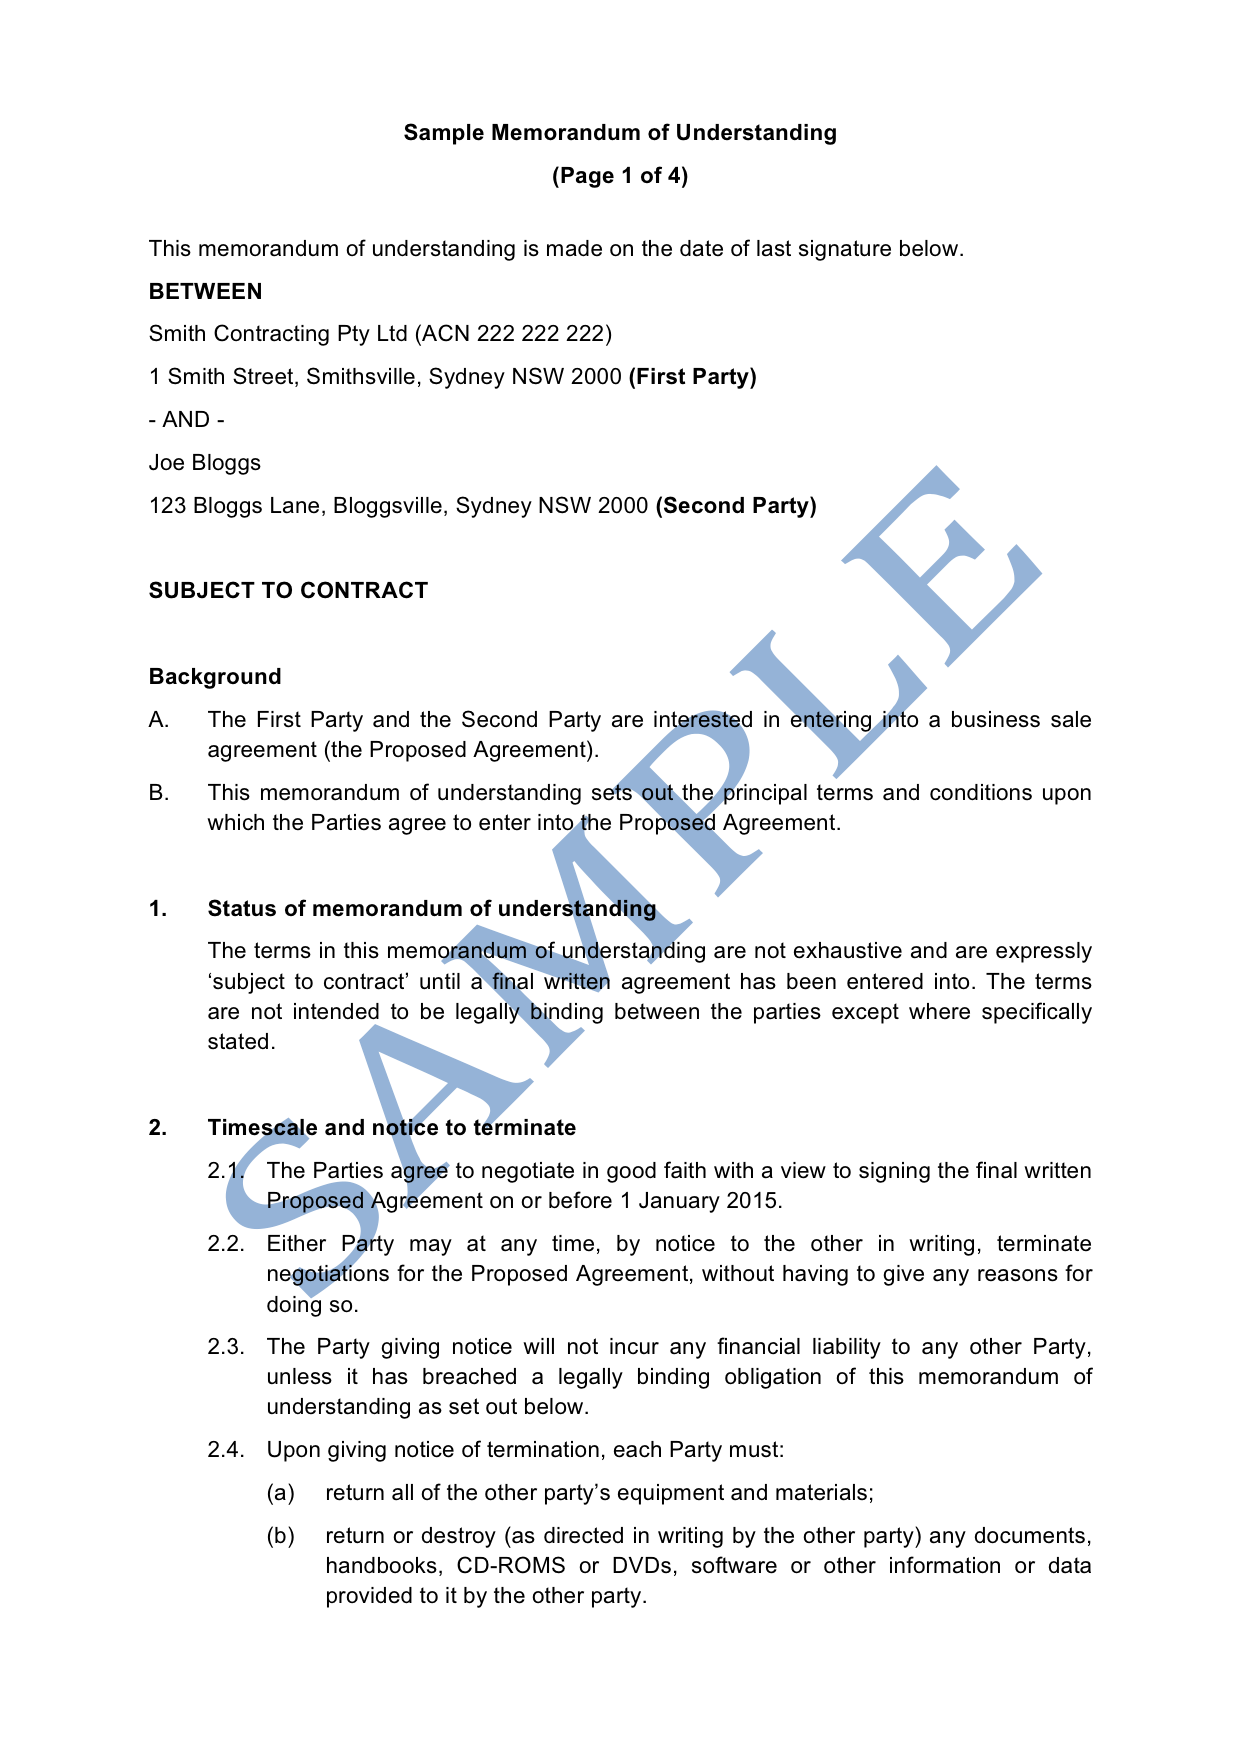 Memorandum of understanding sample lawpath for Template for a memorandum of understanding